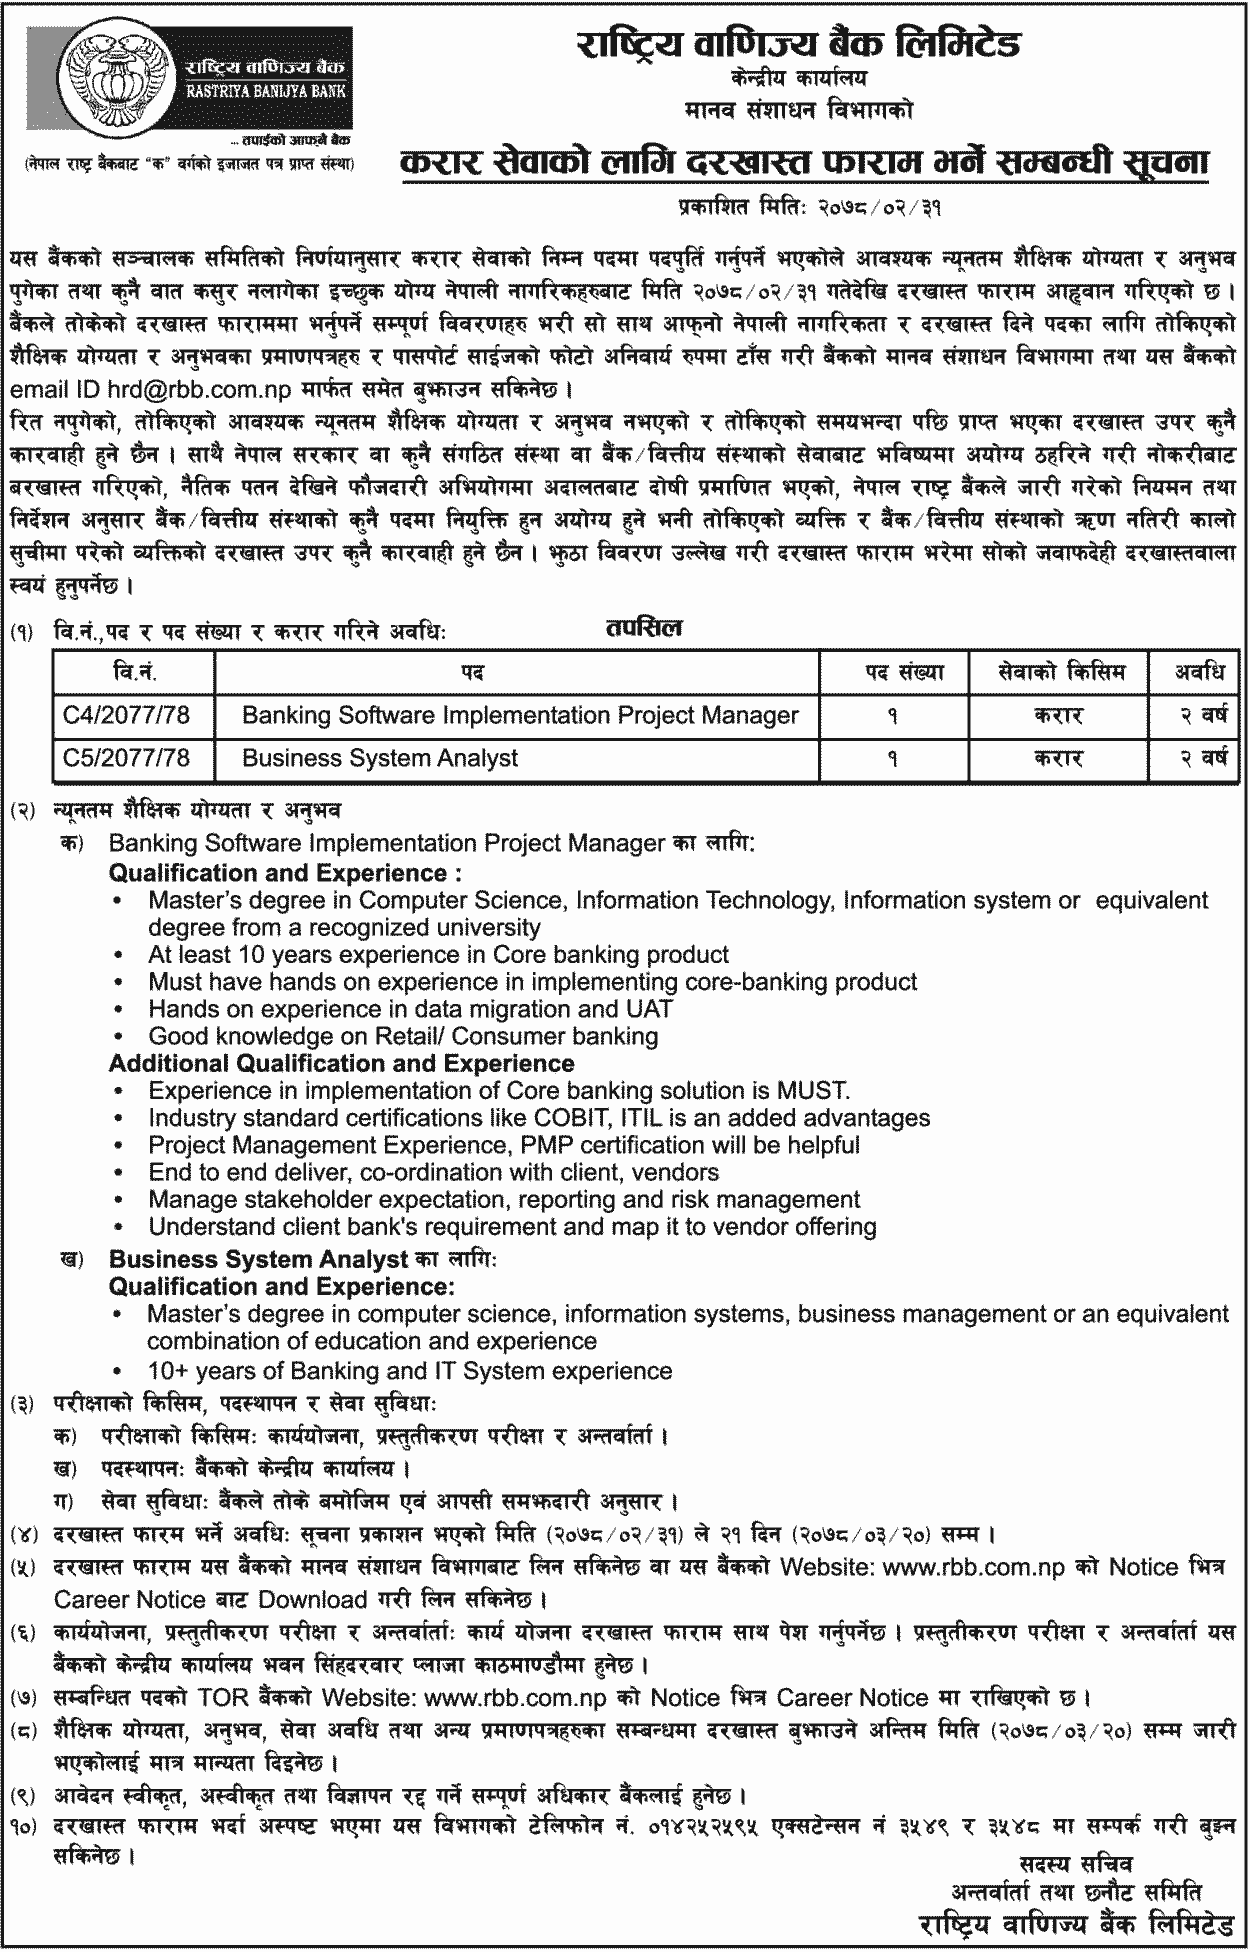 Job Vacancy for Business System Analysist & Banking Software Implementation Project Manager